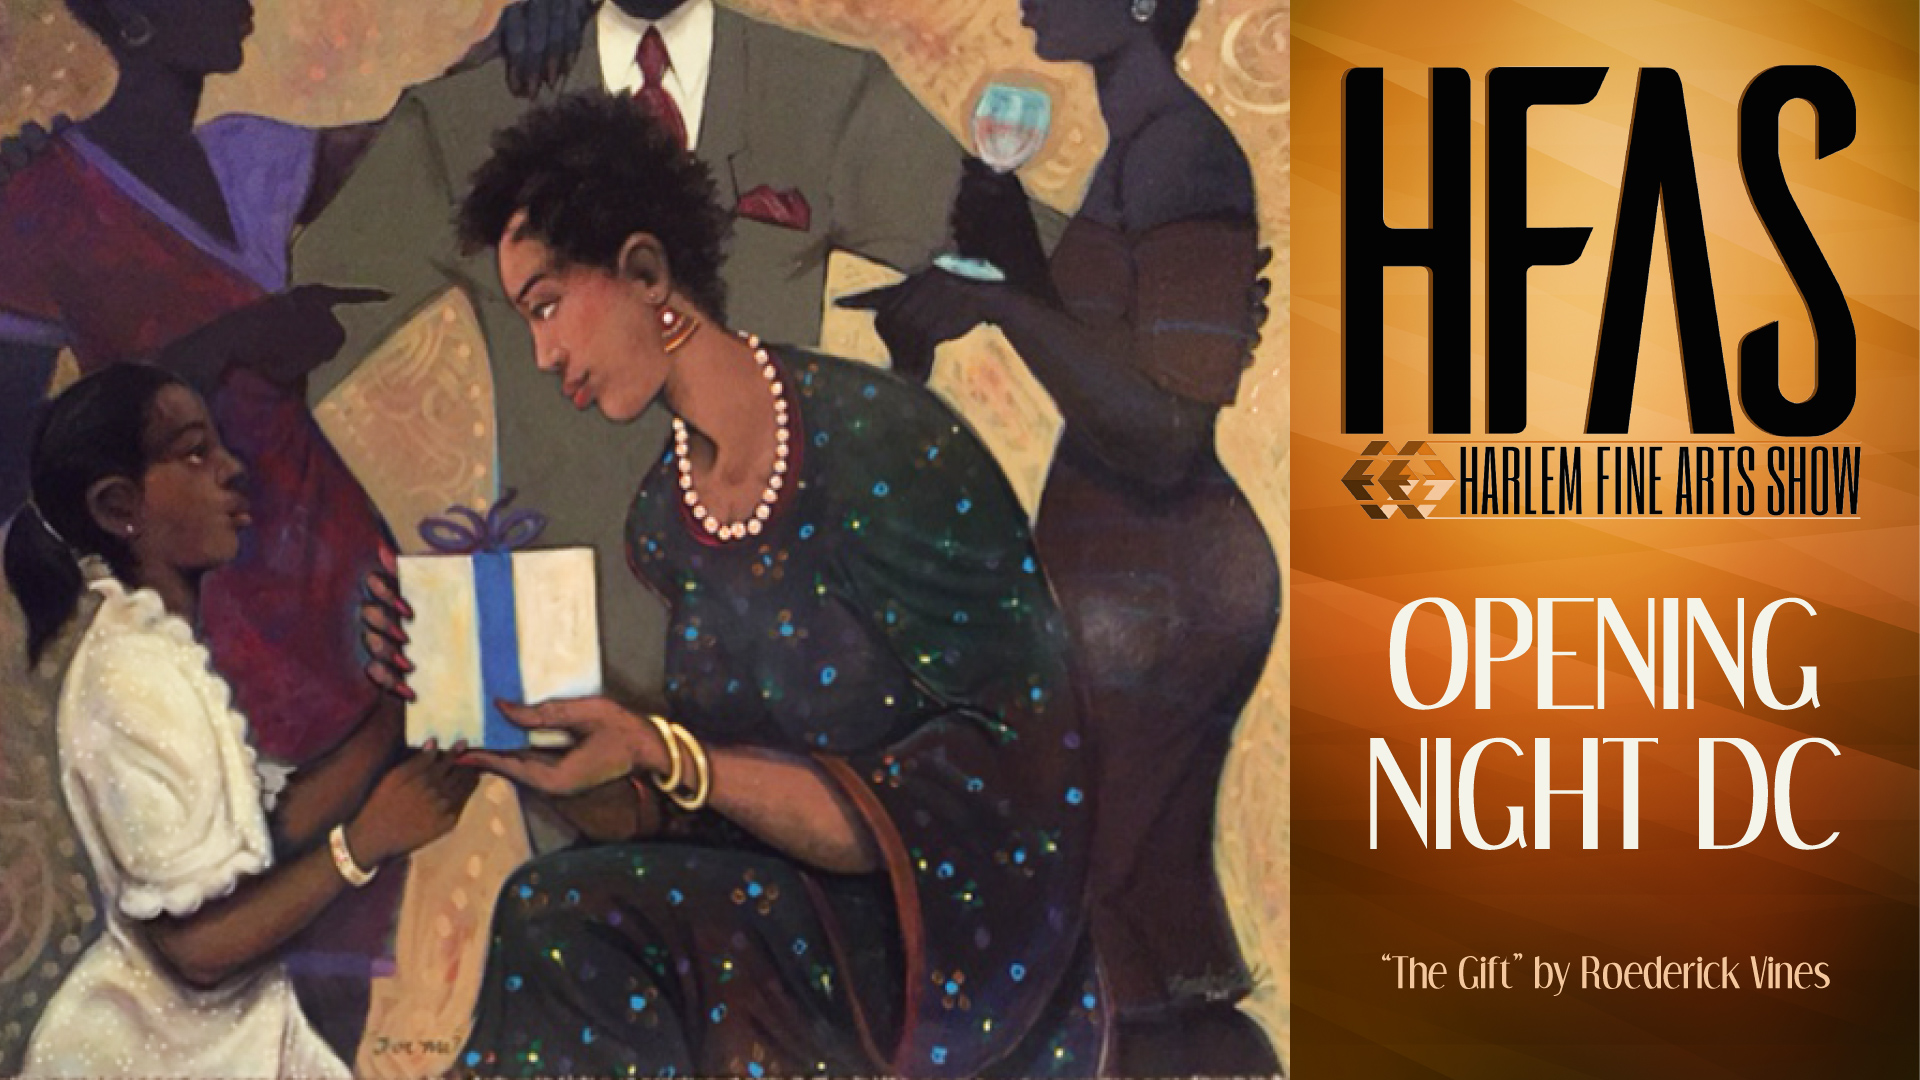 opening night dc at hfas - painting by roederick vines